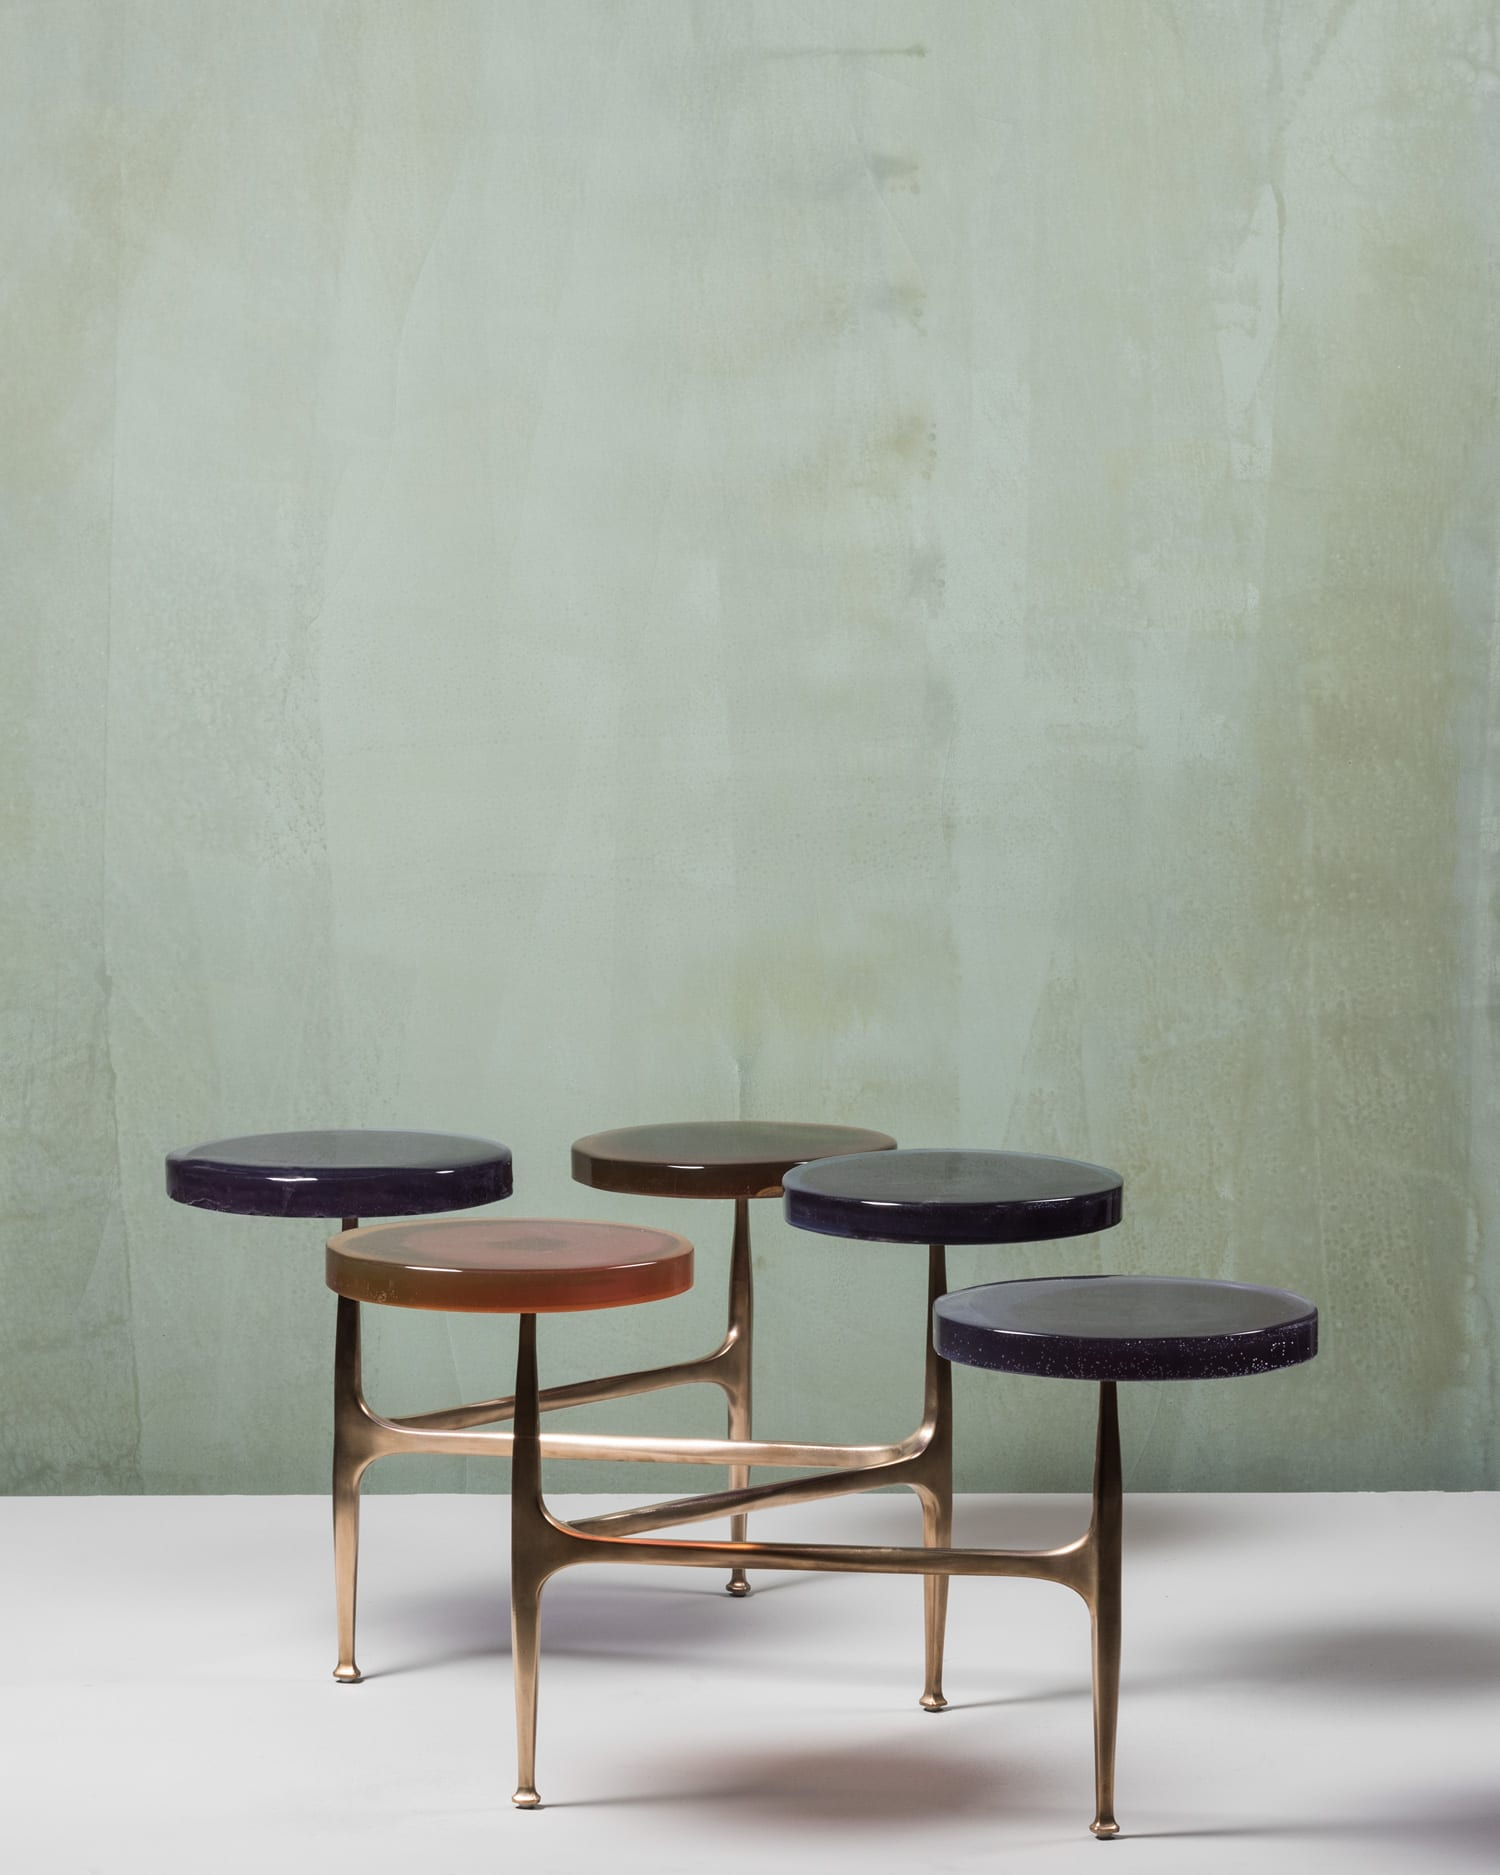 Transparency Matters: Furniture, Lighting & Art Collection by Draga & Aurel | Yellowtrace